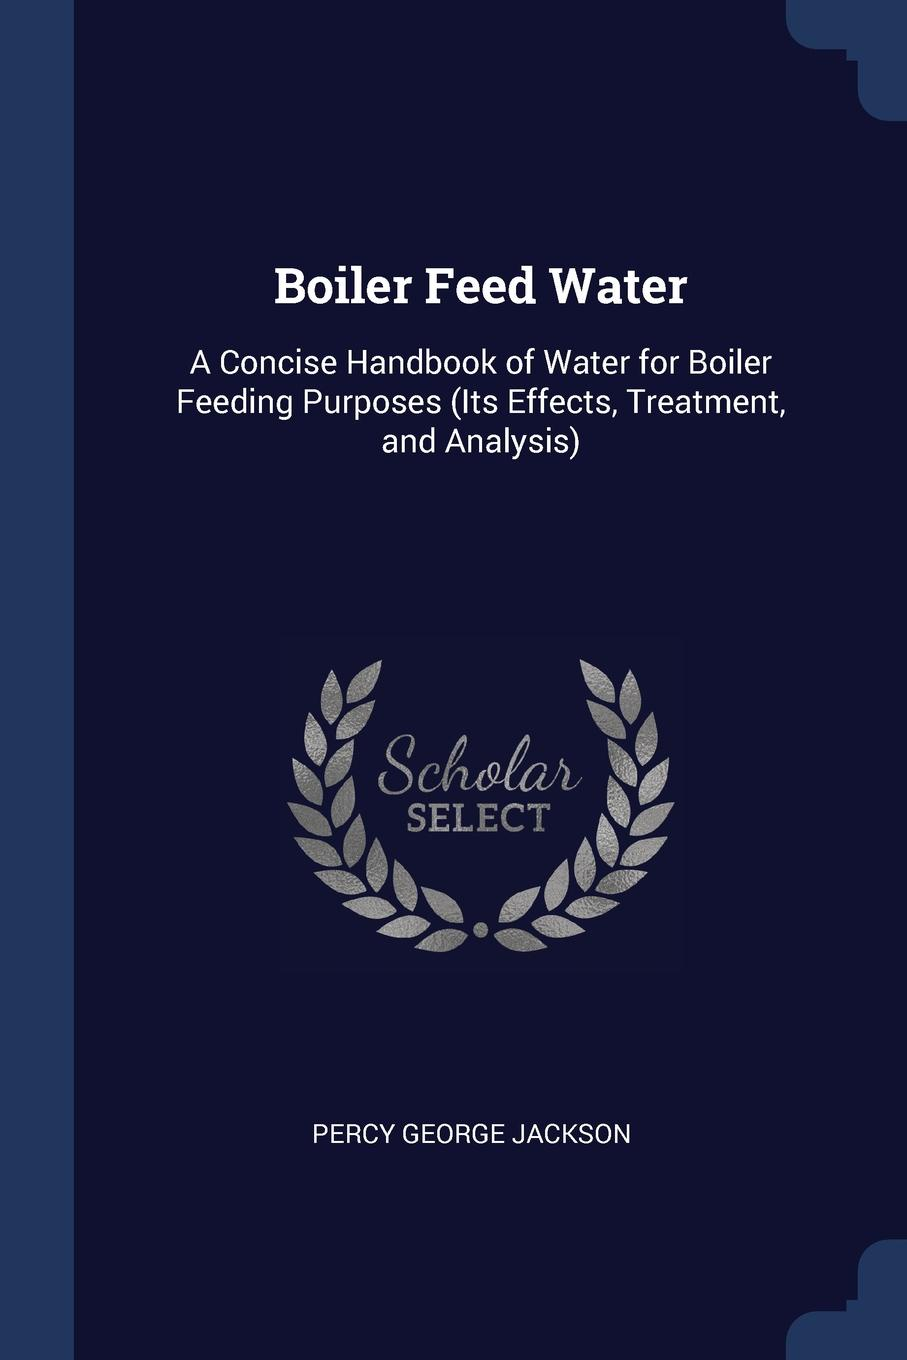 Percy George Jackson Boiler Feed Water. A Concise Handbook of Water for Feeding Purposes (Its Effects, Treatment, and Analysis)